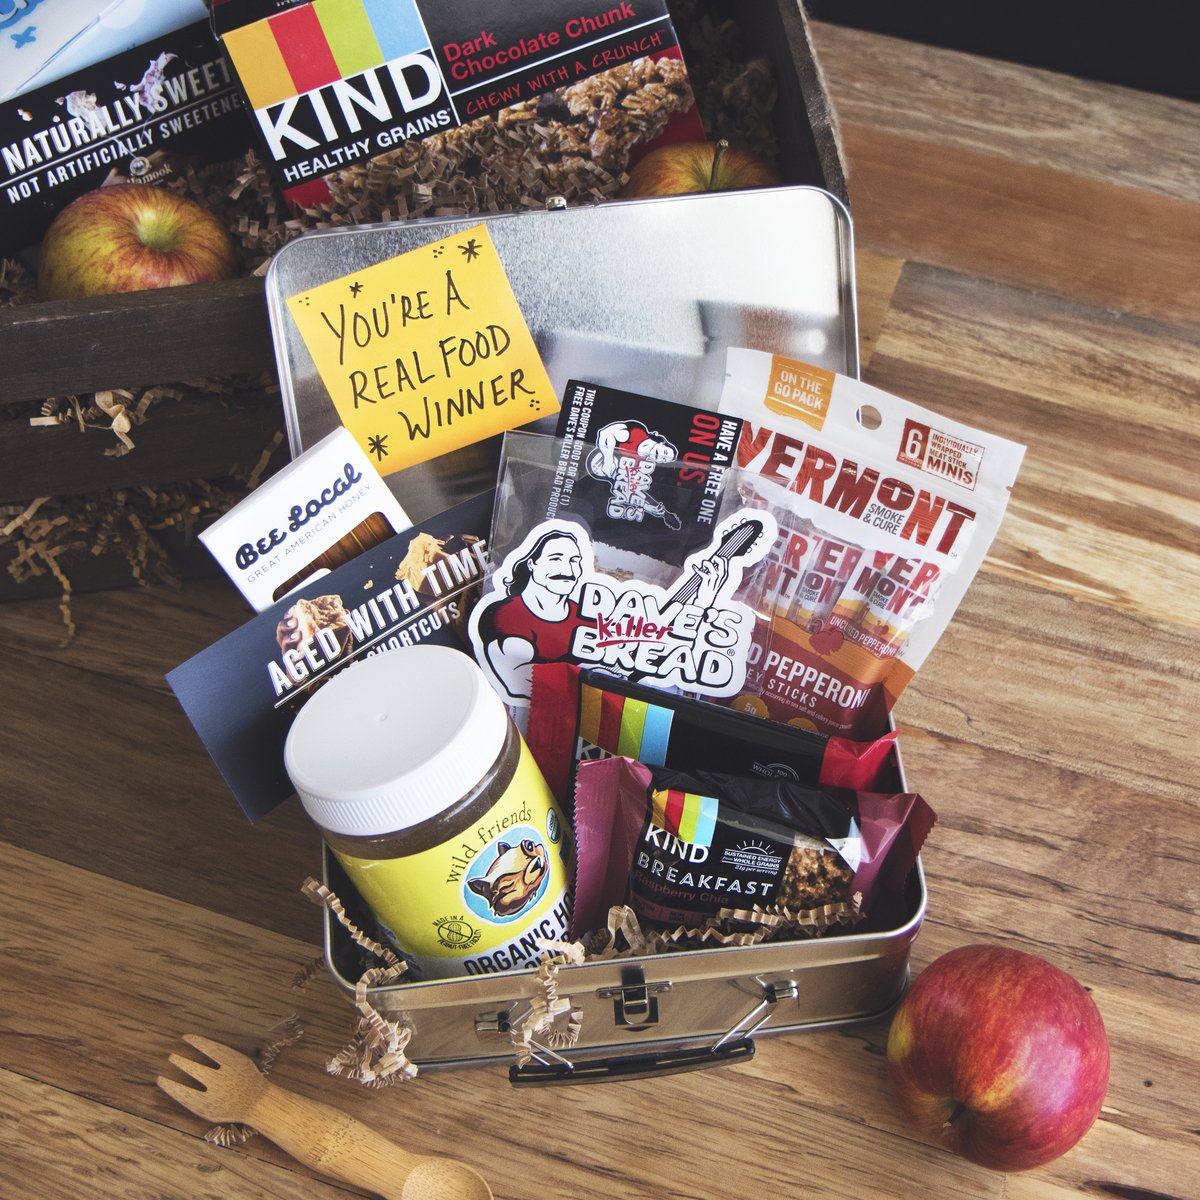 Enter to win this Real Food lunchbox! RT & tag a friend w/ a lunch note. #DeJunkTheLunchbox https://t.co/FHiaou1ypE https://t.co/a9KWl0bRyy